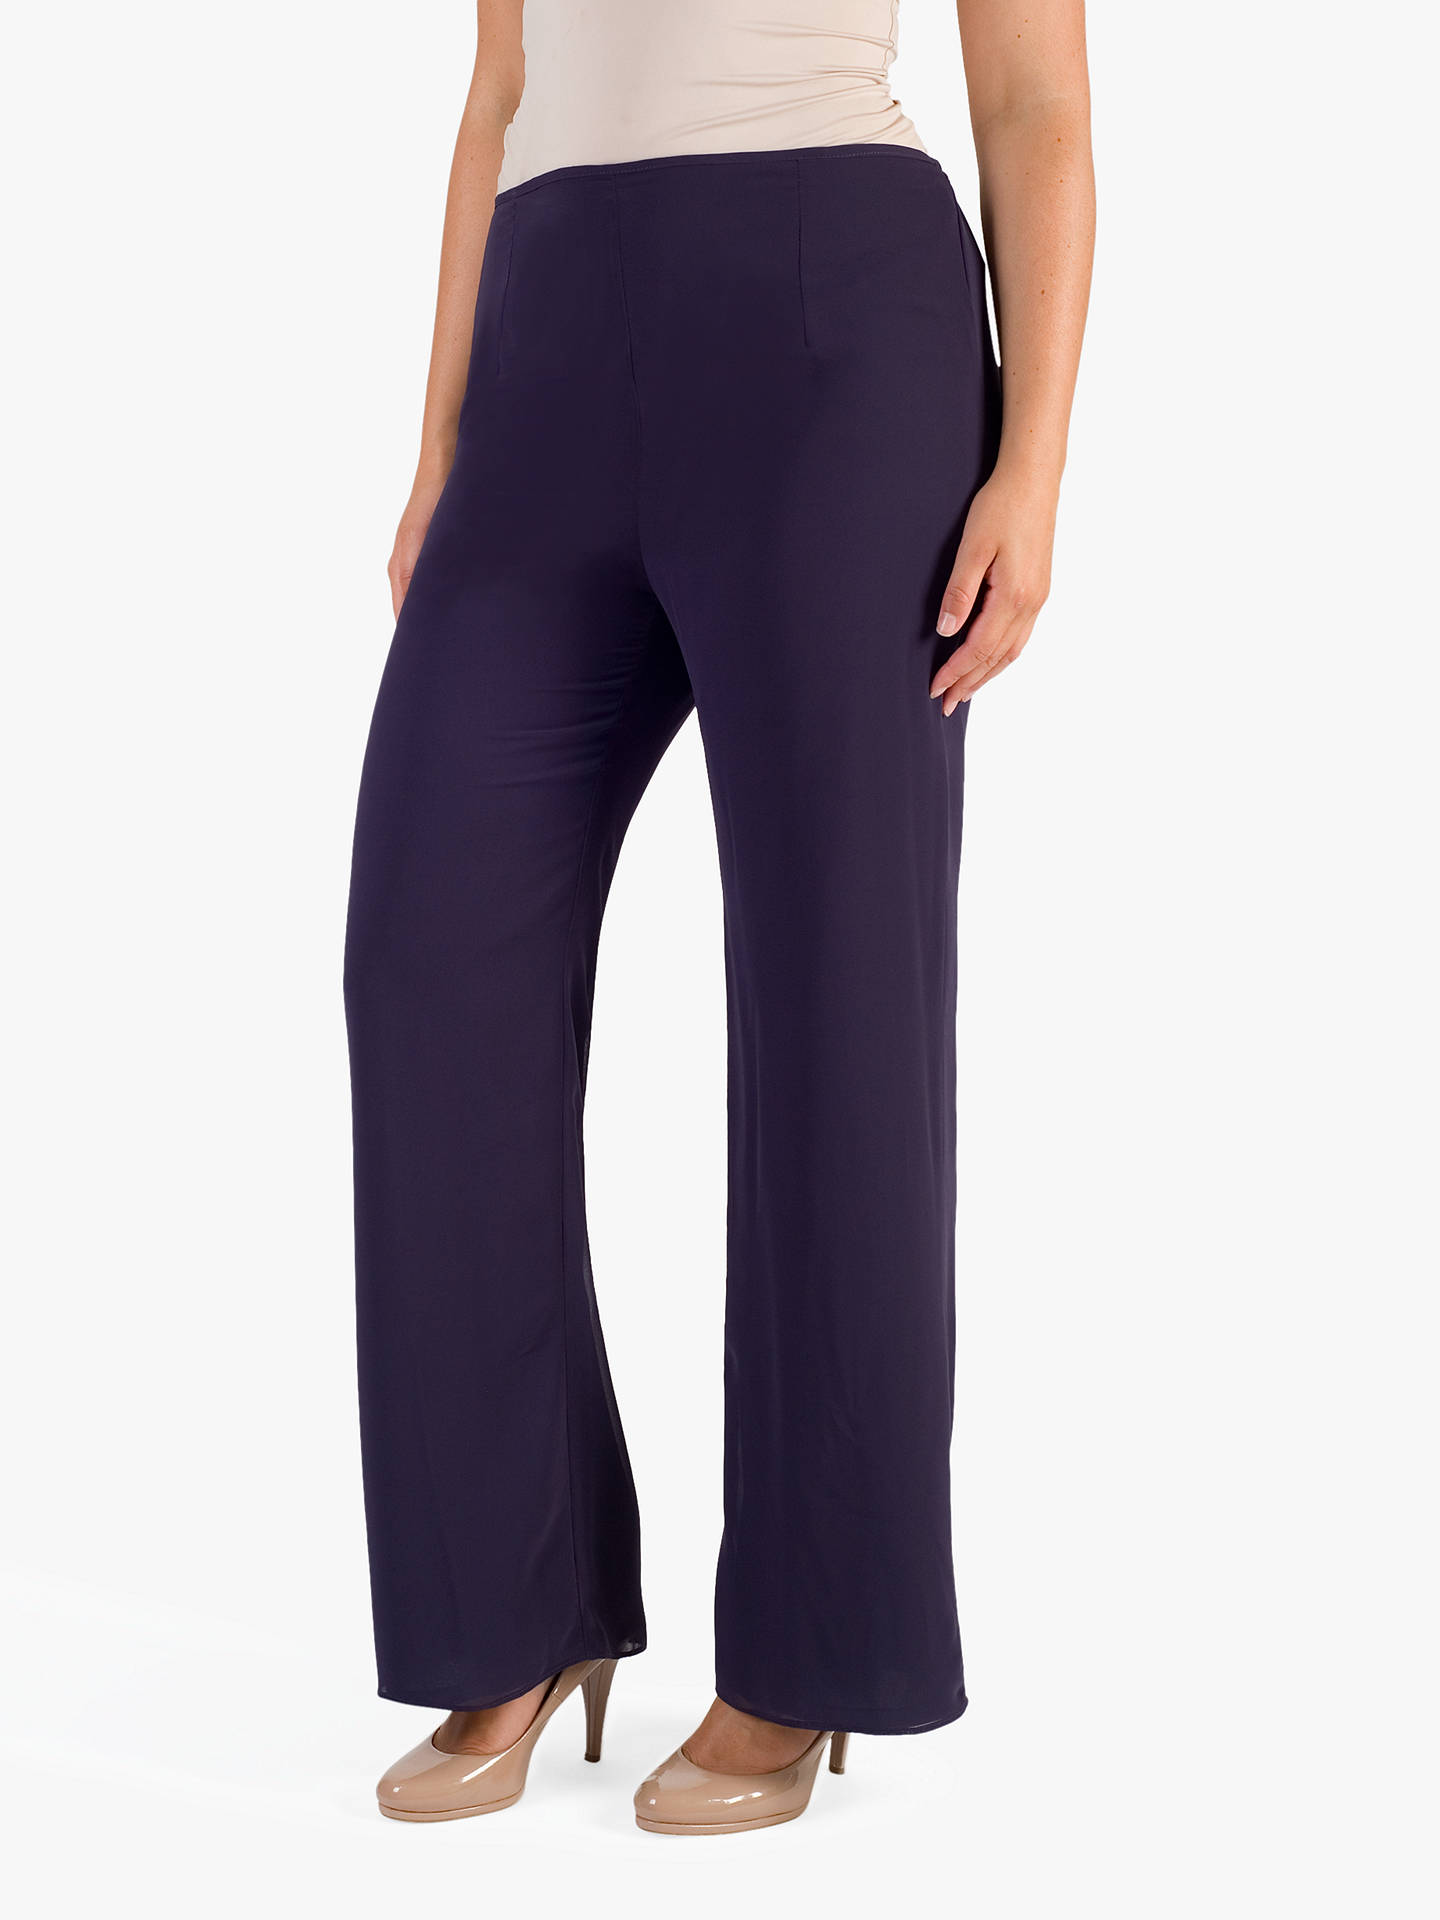 BuyChesca Jersey Lined Chiffon Trousers, Grape, 12 Online at johnlewis.com